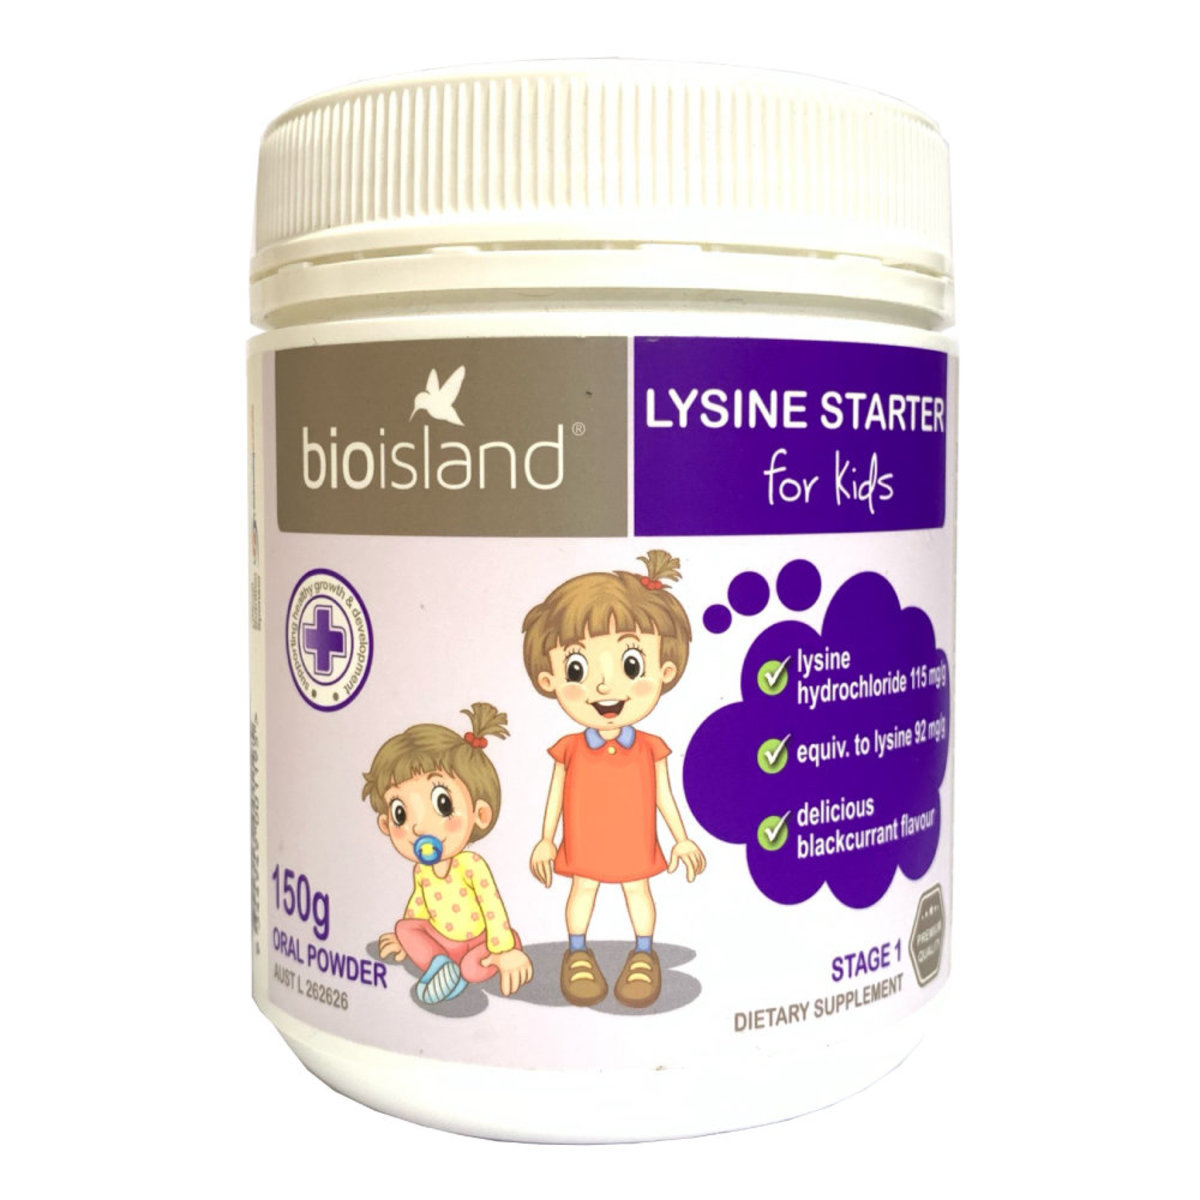 Lysine Started for Kids Oral Powder 150g [Parallel Import] (9344949001195)